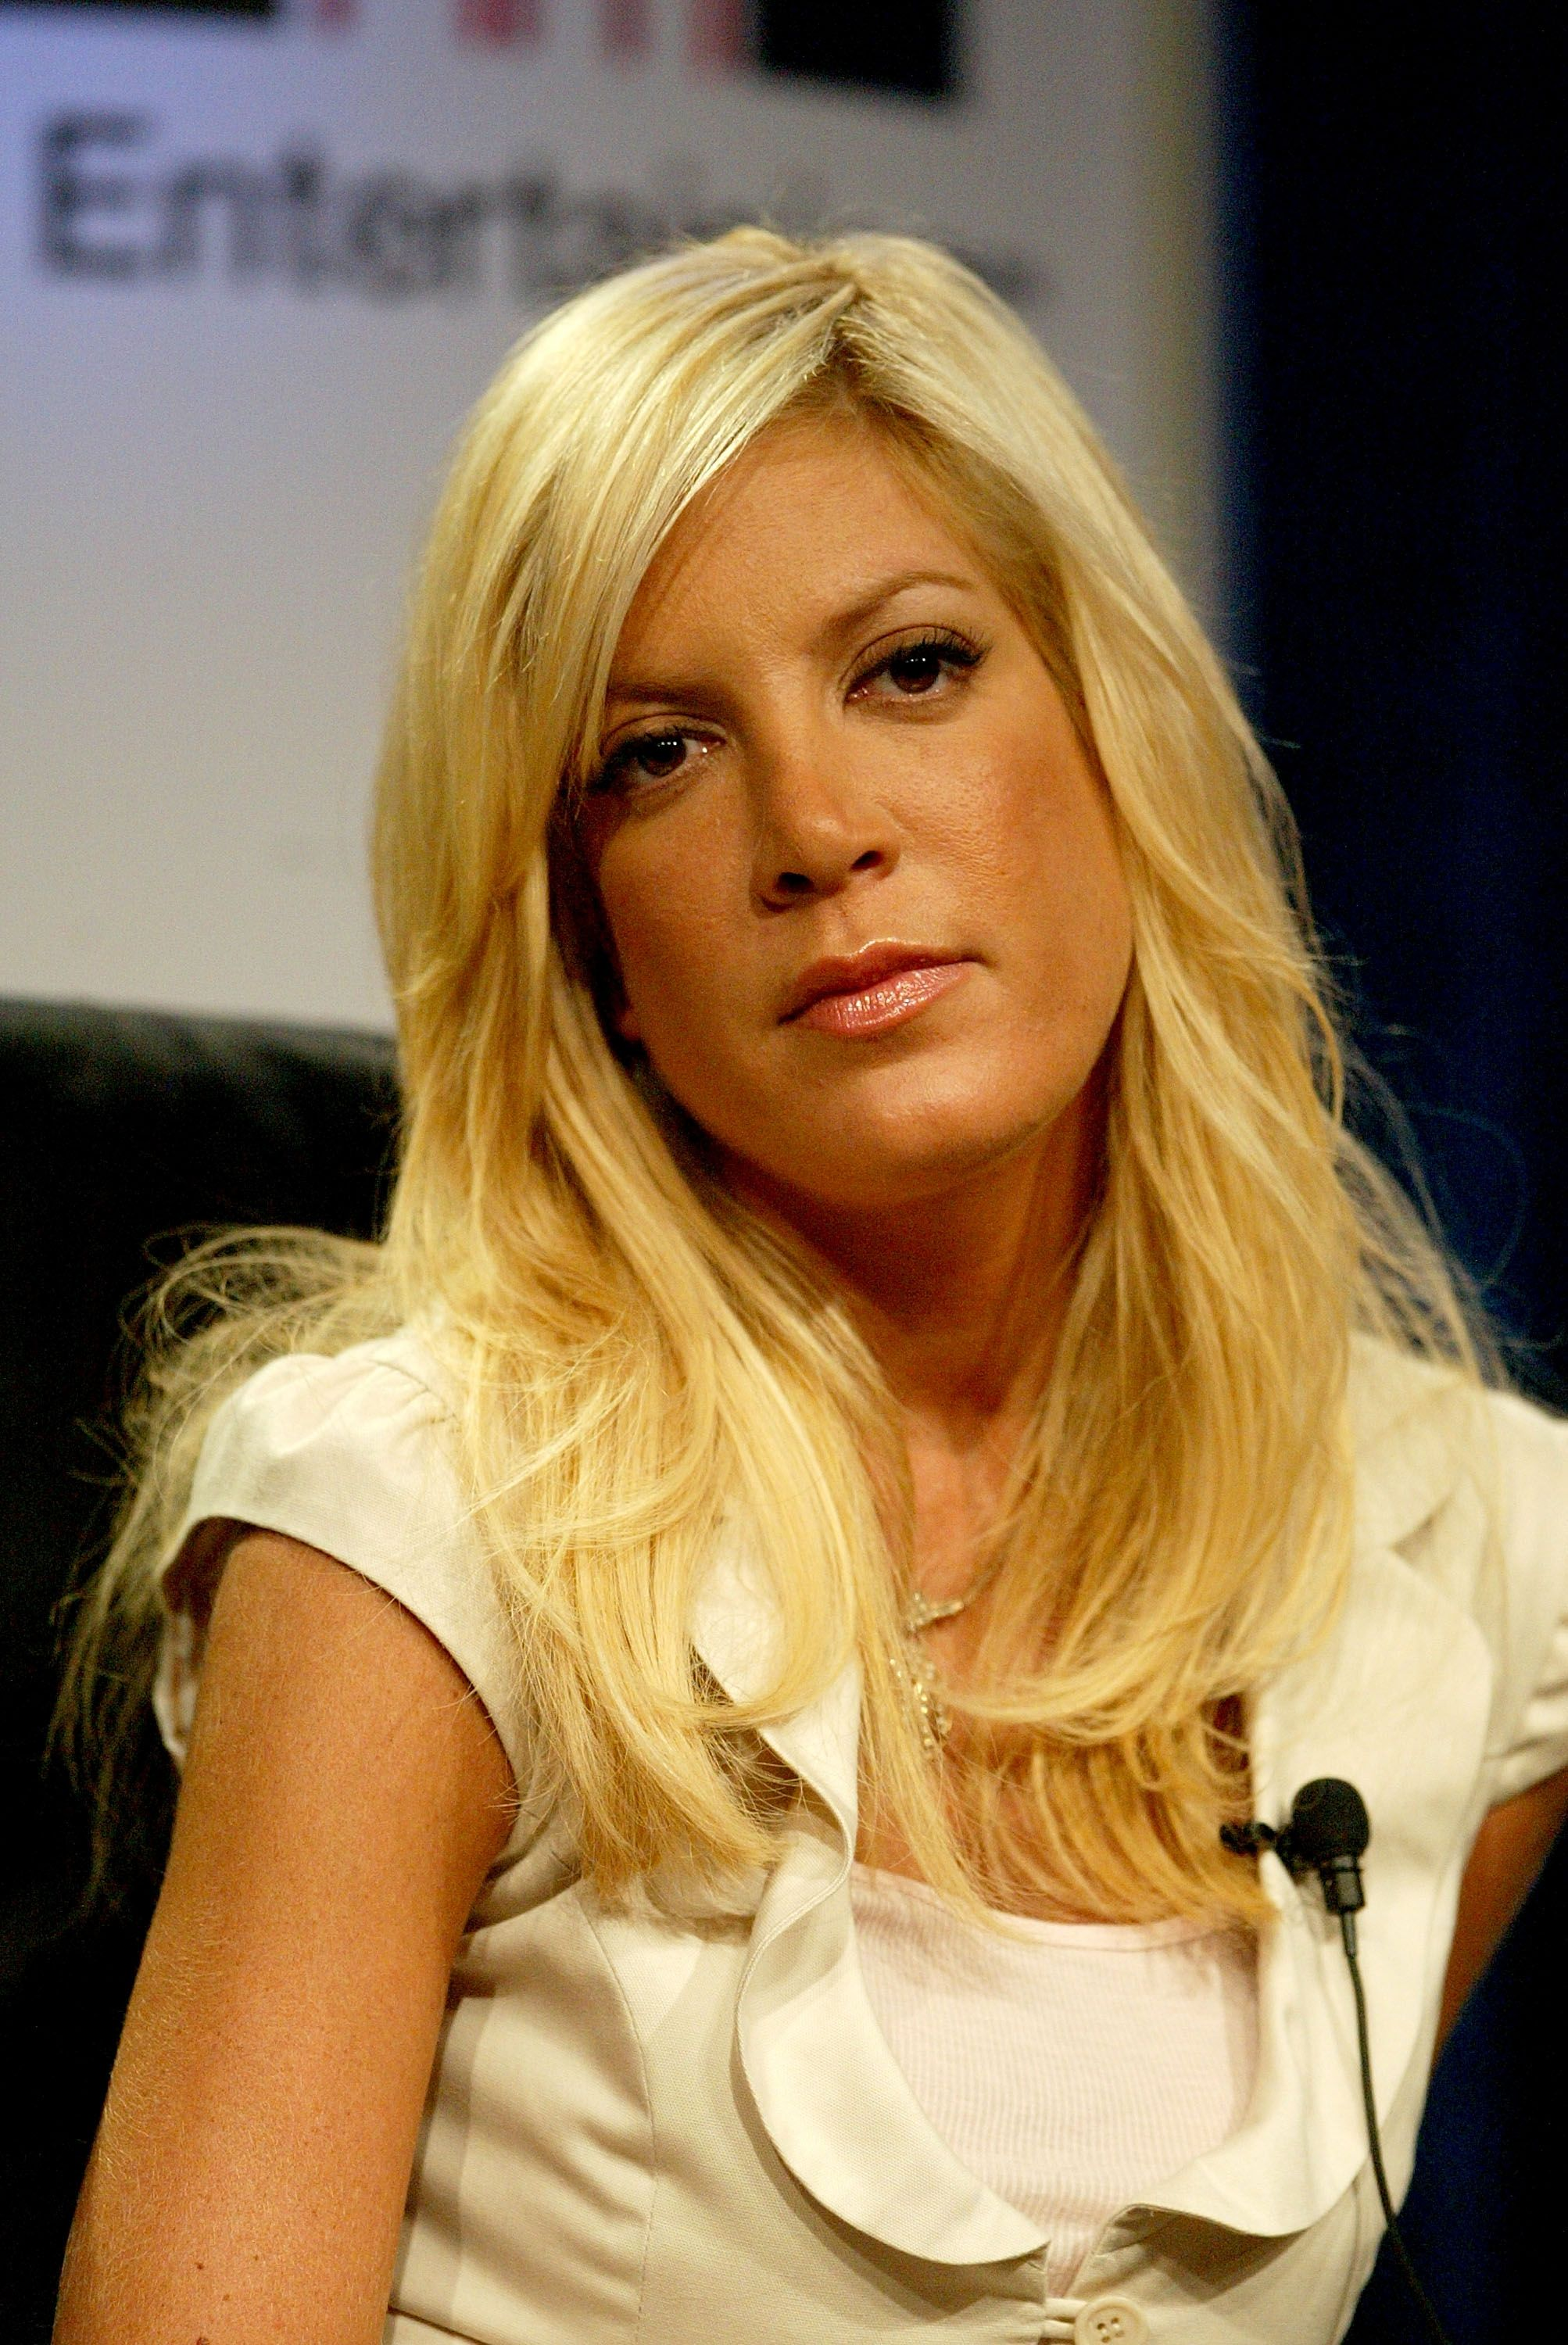 """Tori Spelling attending Court TV's """"Hollywood Stalkers"""" on July 14, 2005 in Beverly Hills. 